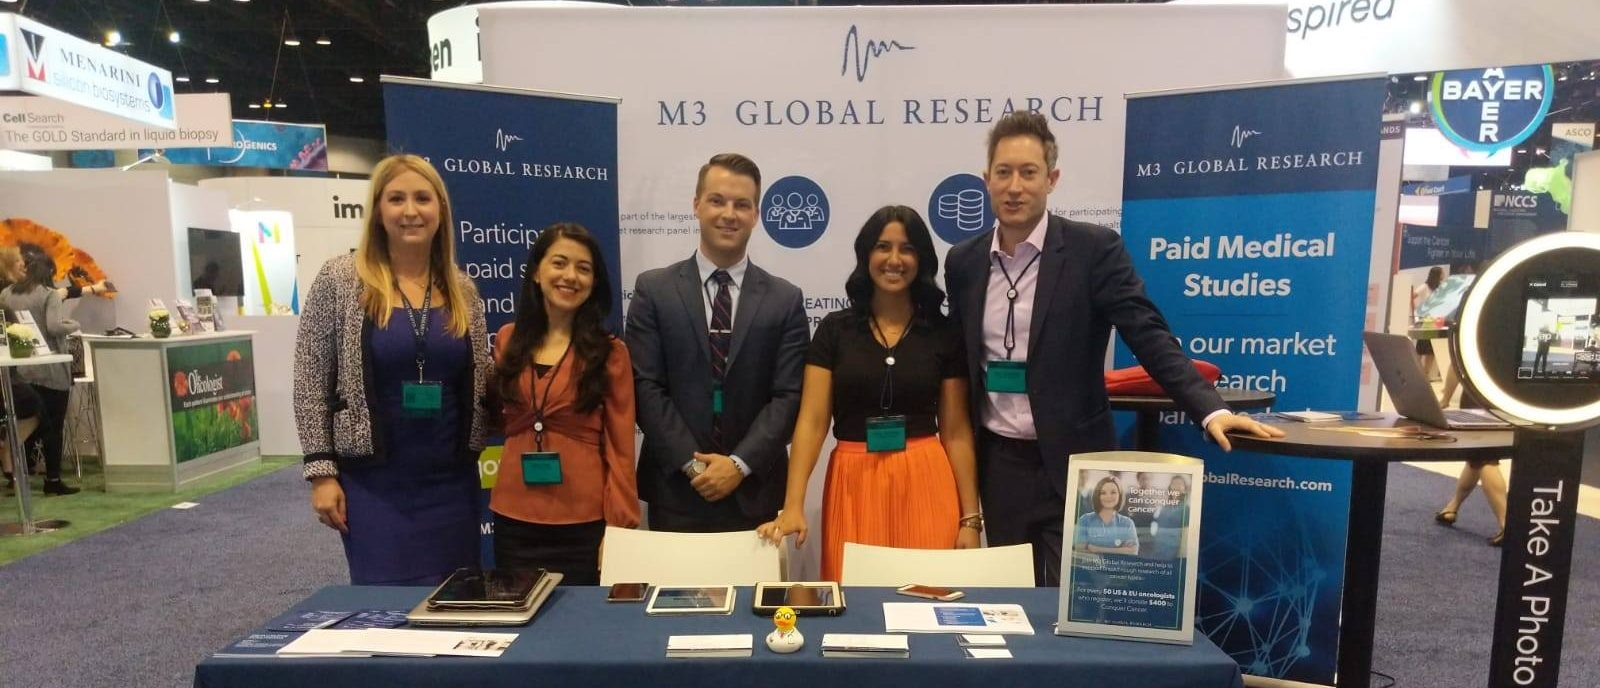 M3 Global Research Attends 2019 ASCO Annual Meeting